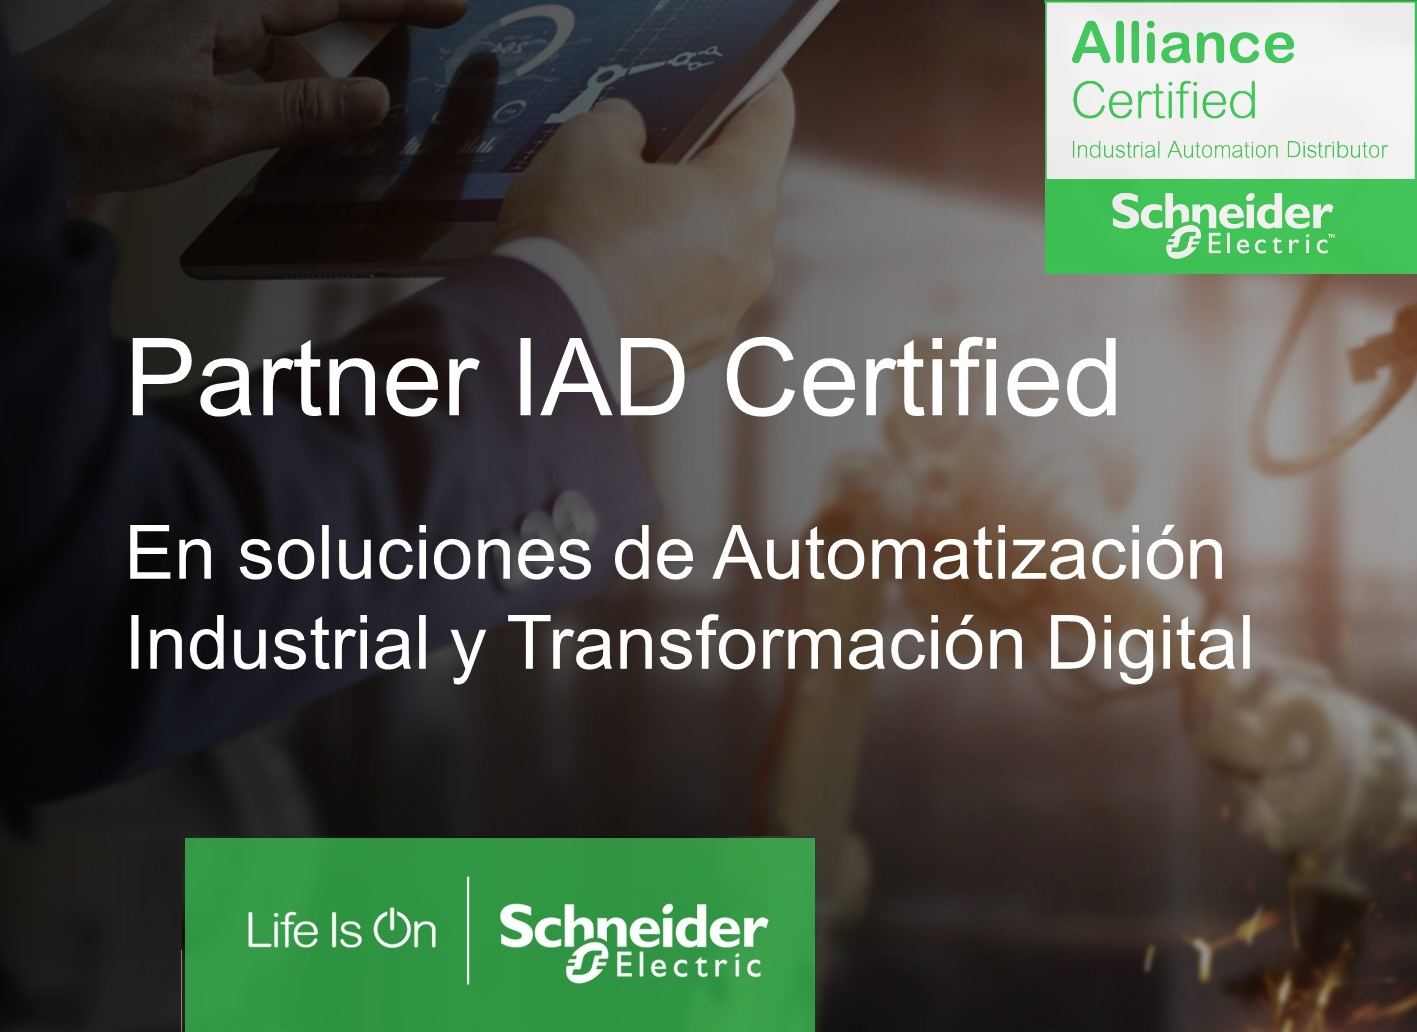 Tecnytran ha obtenido el certificado Alliance Certified Industrial Automation Distributor de Schneider Electric